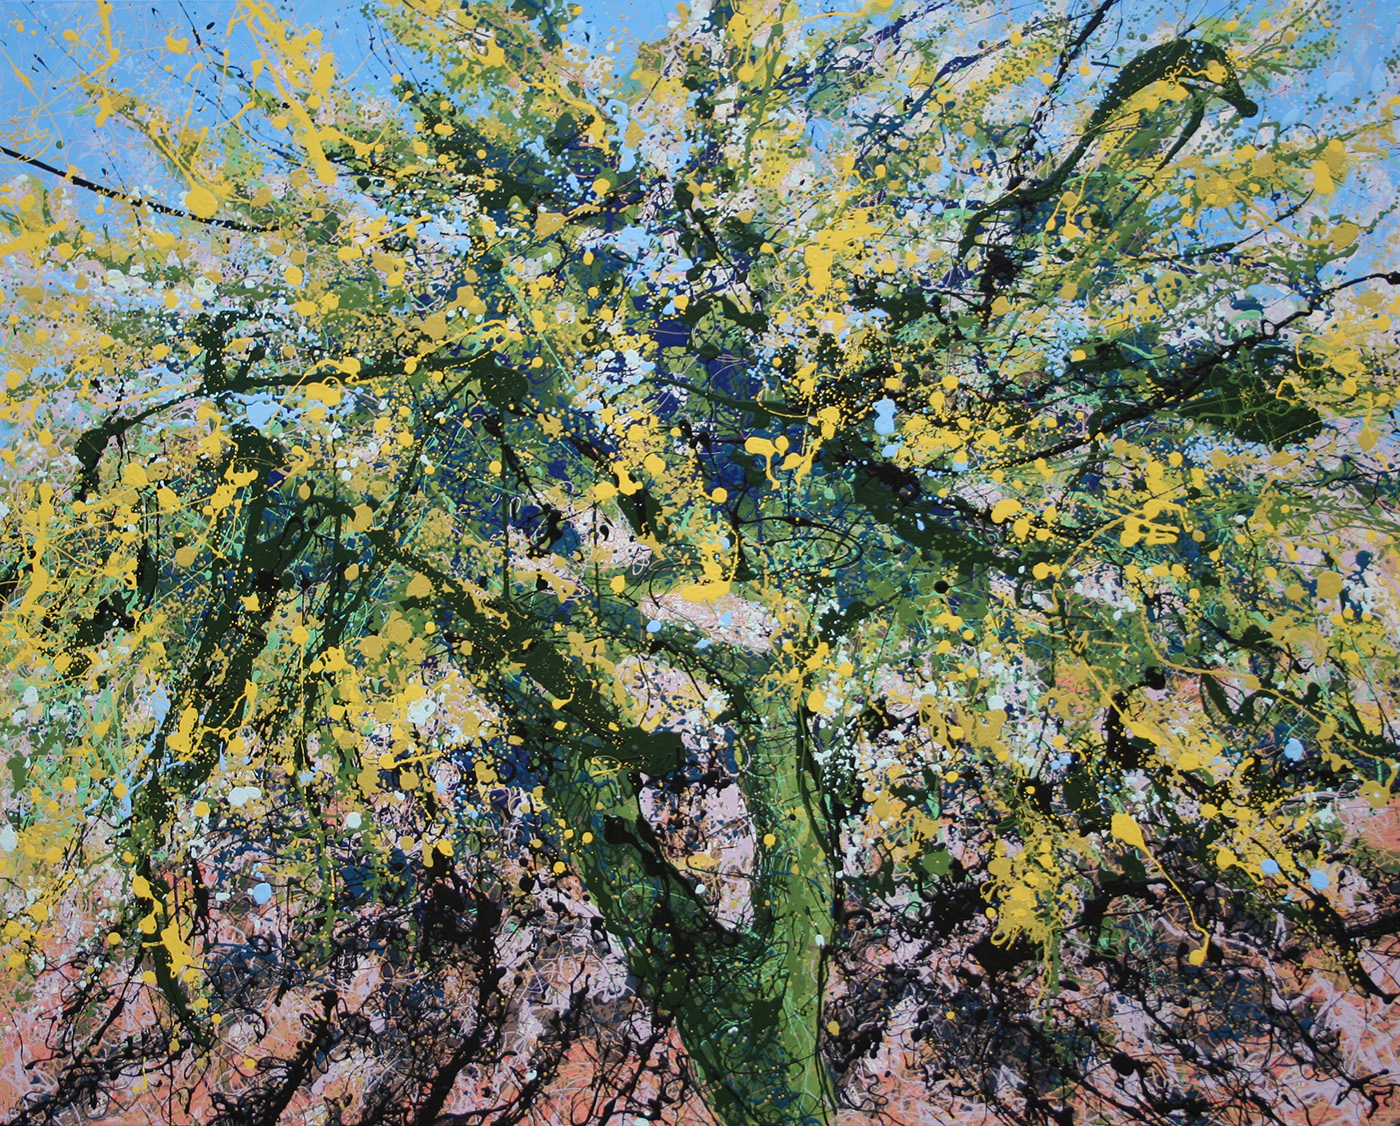 Palo Verde in Arizona Latex Enamel Painting on Gallery Wrapped Canvas by Fort Collins, Colorado Artist Lisa Cameron Russell